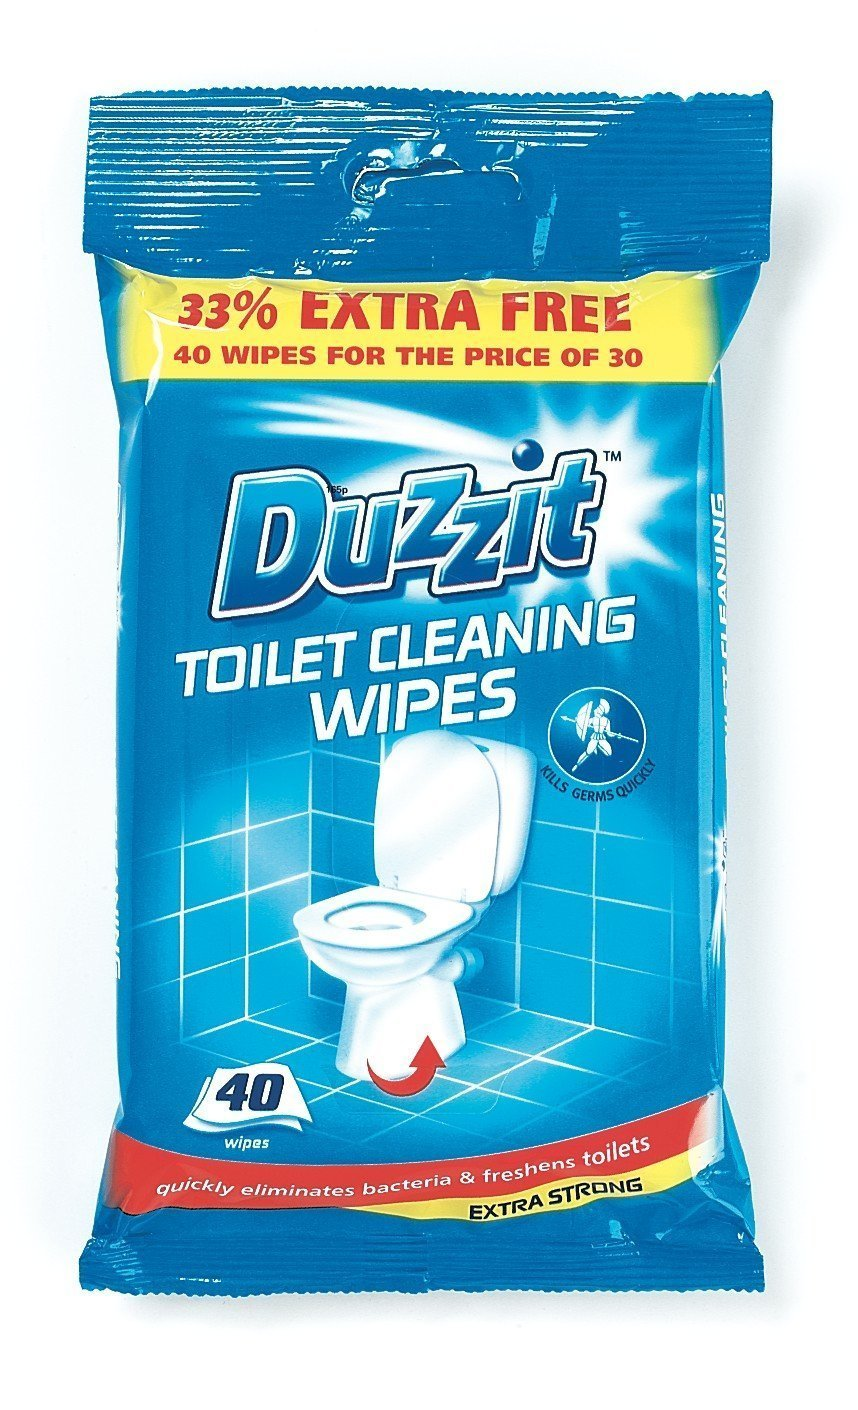 Toilet Cleaning Wipes 40pk Duzzit